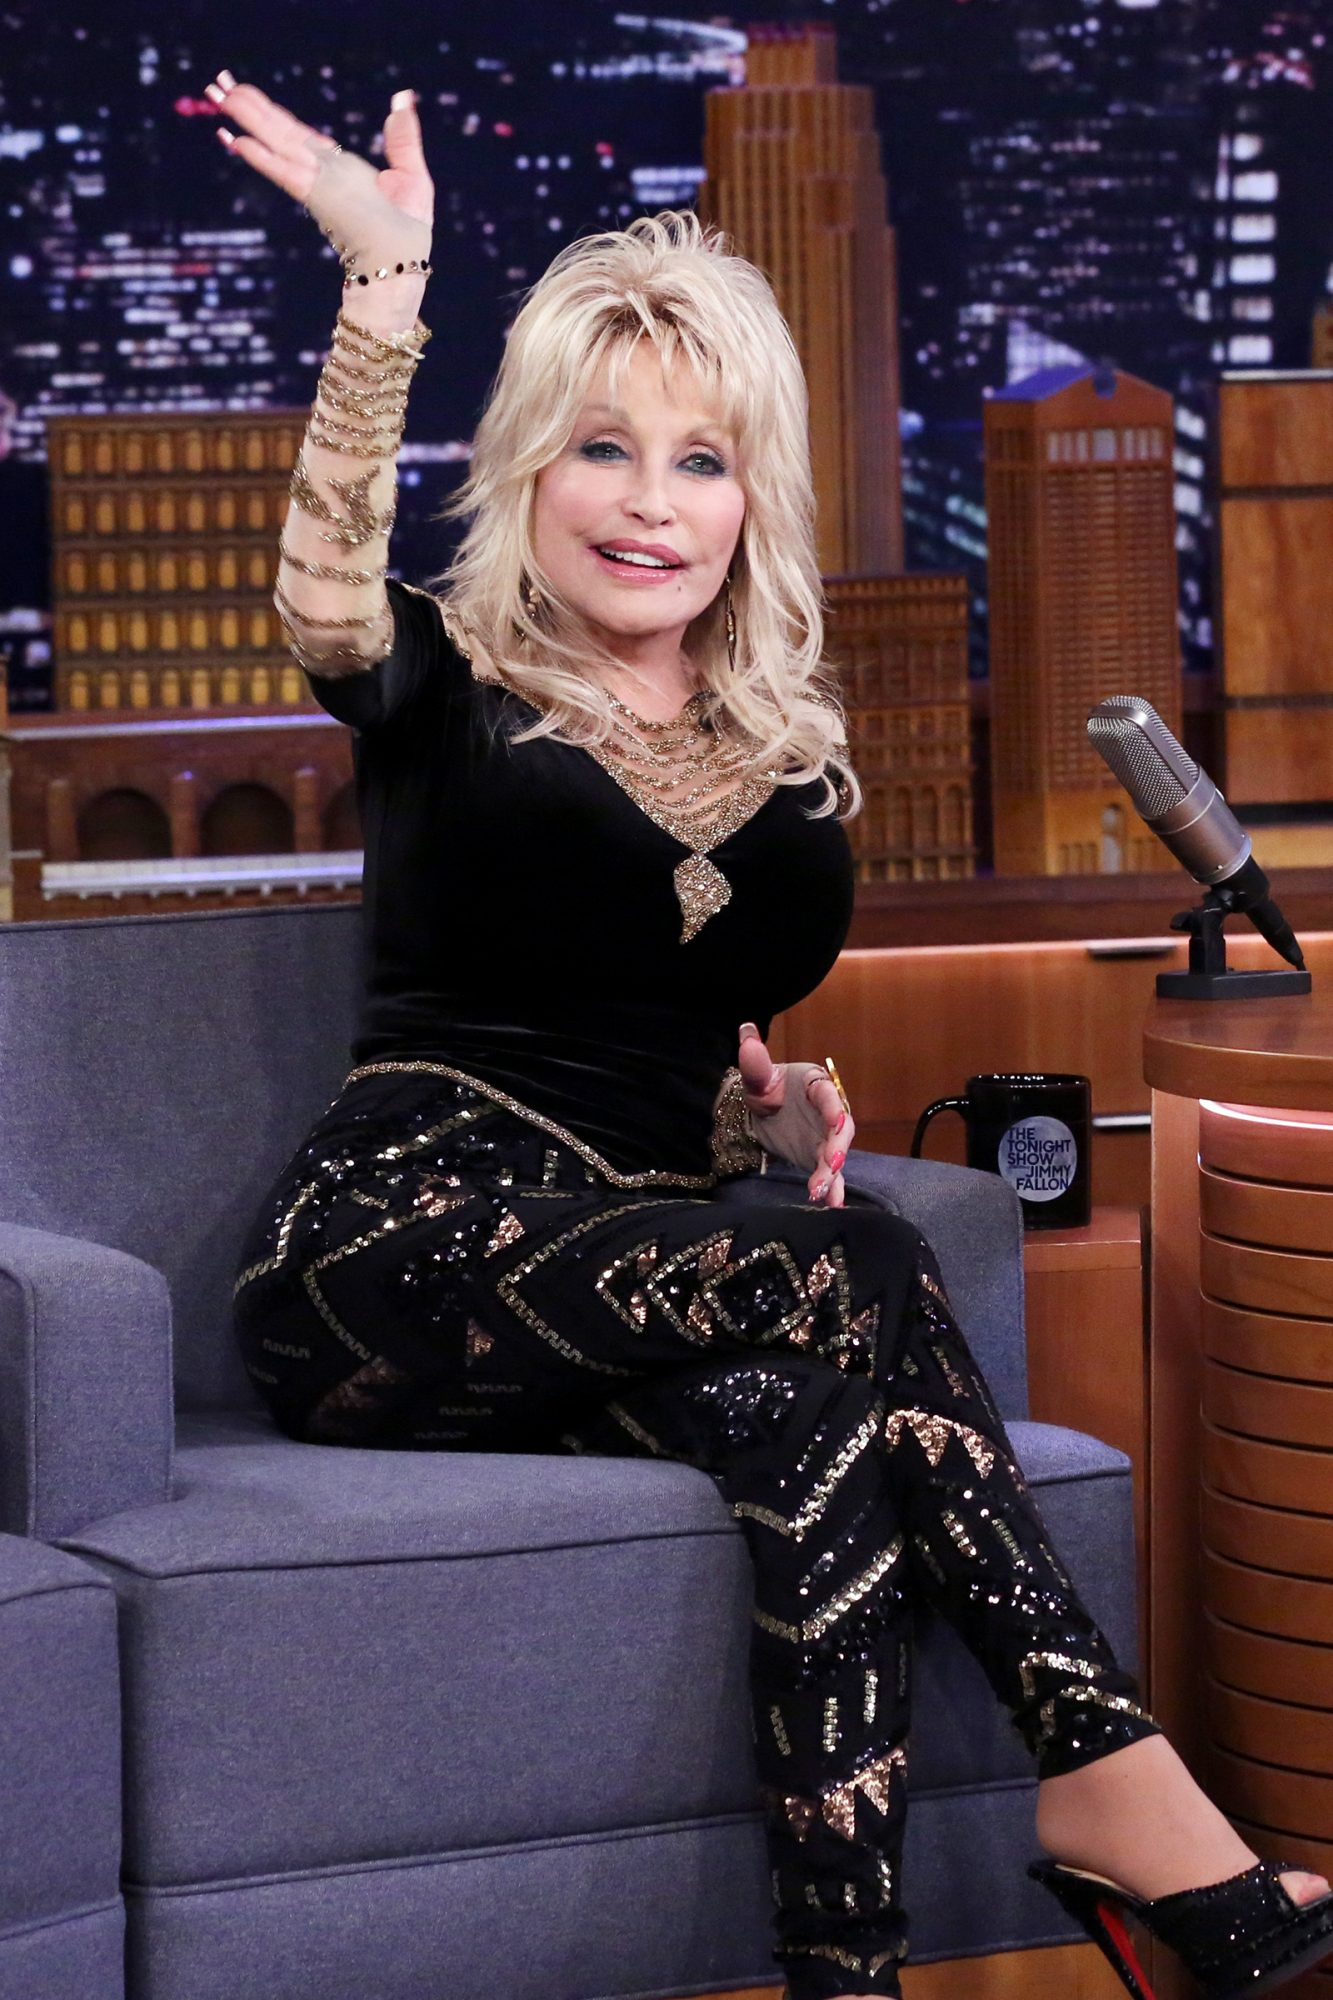 Dolly Parton during an interview on THE TONIGHT SHOW STARRING JIMMY FALLON November 20, 2019